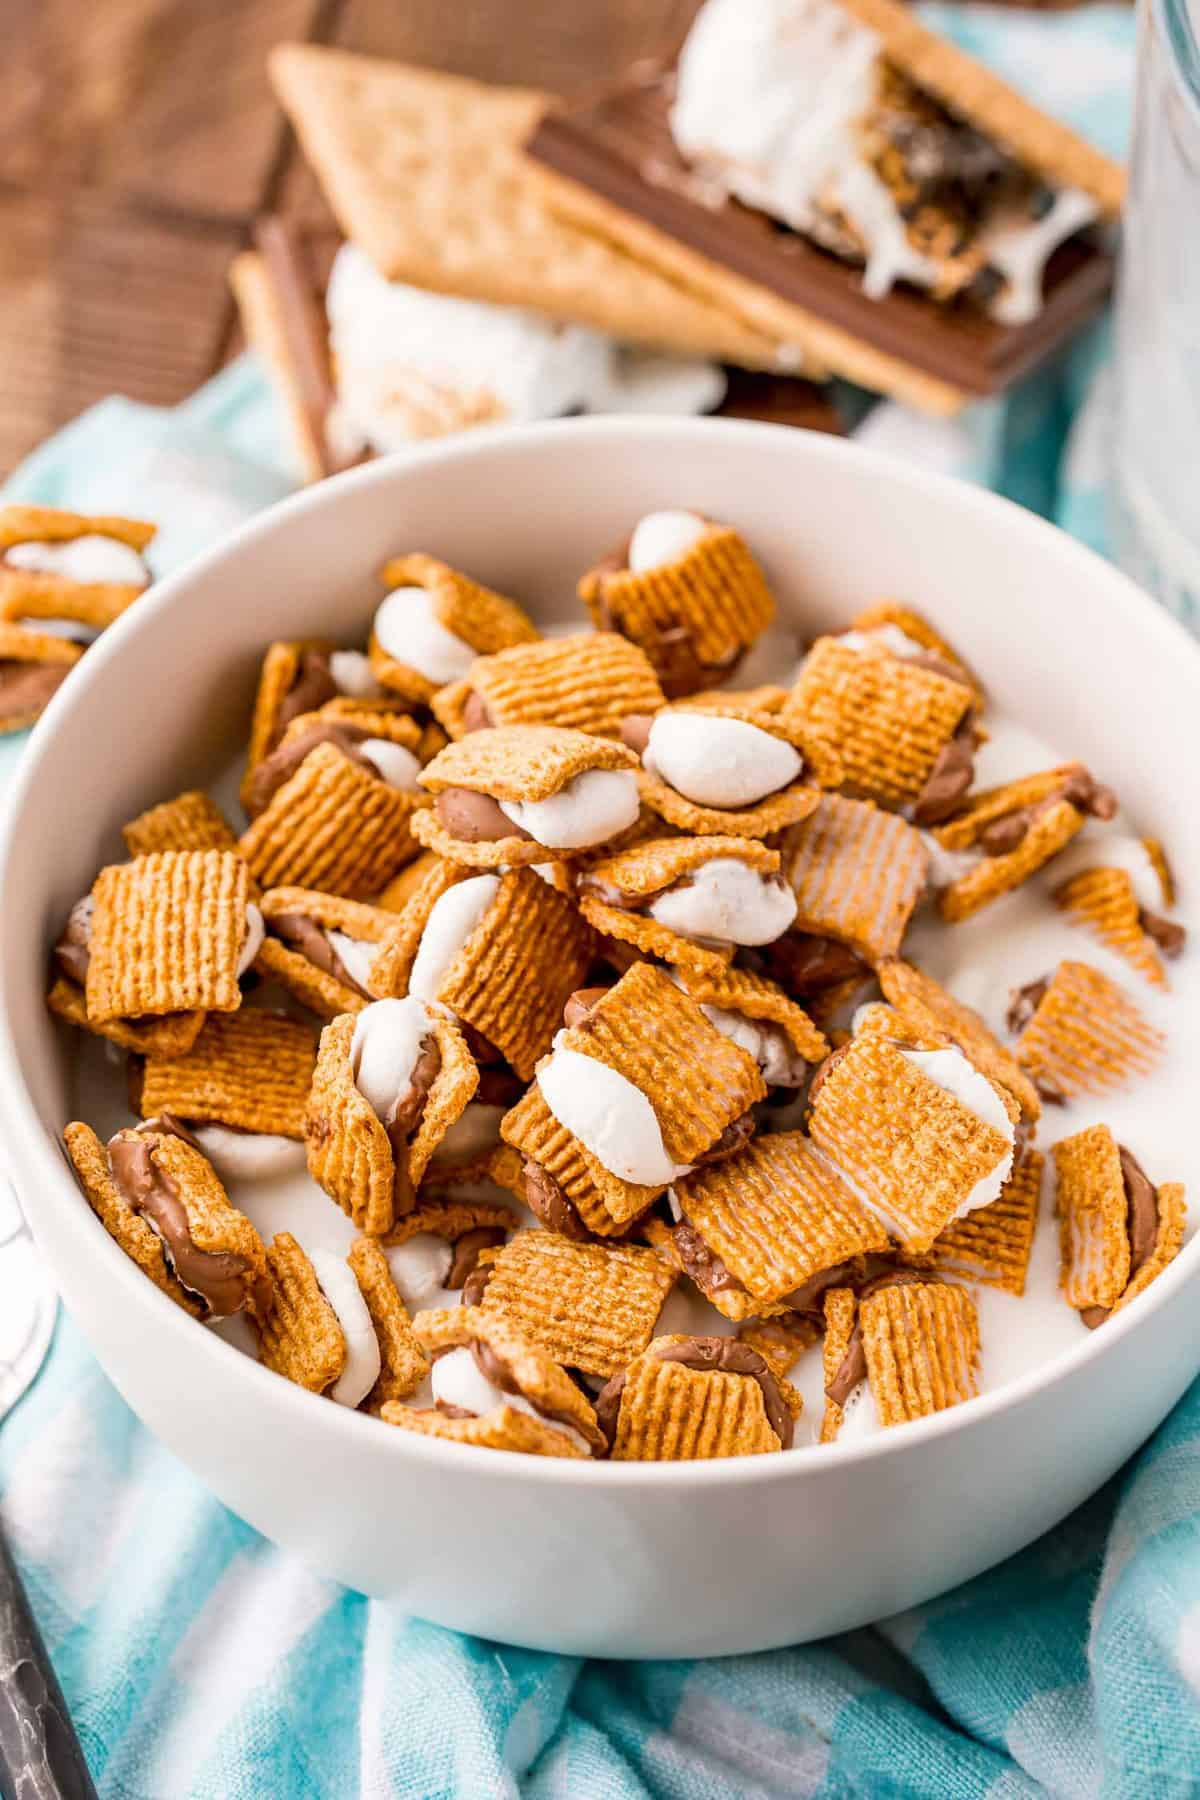 S'mores cereal in a bowl, with real s'mores in the background.